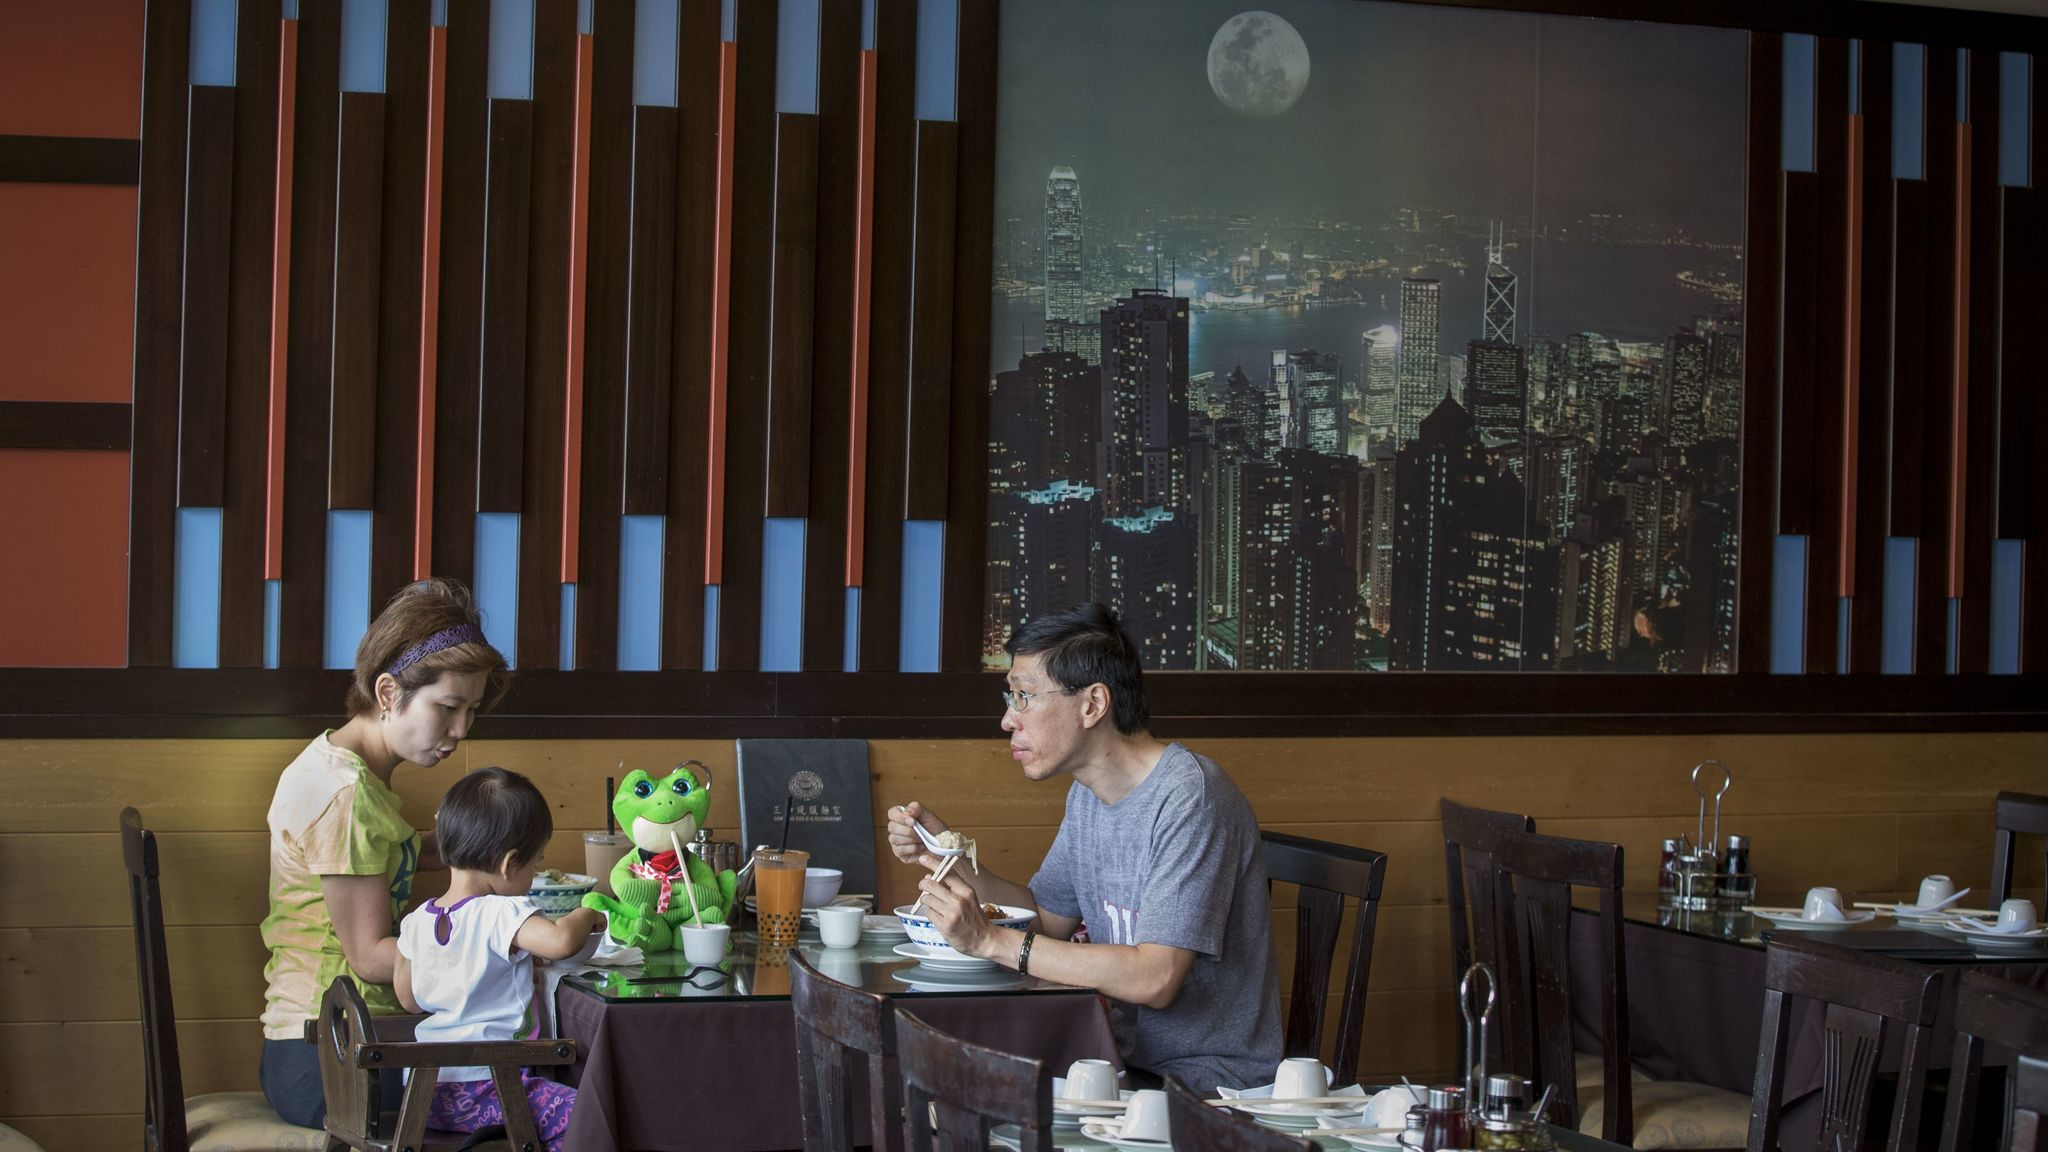 For tasty Cantonese meals, families flock to one of the city's most popular eateries, Sam Woo. In the background, a picture of Hong Kong.